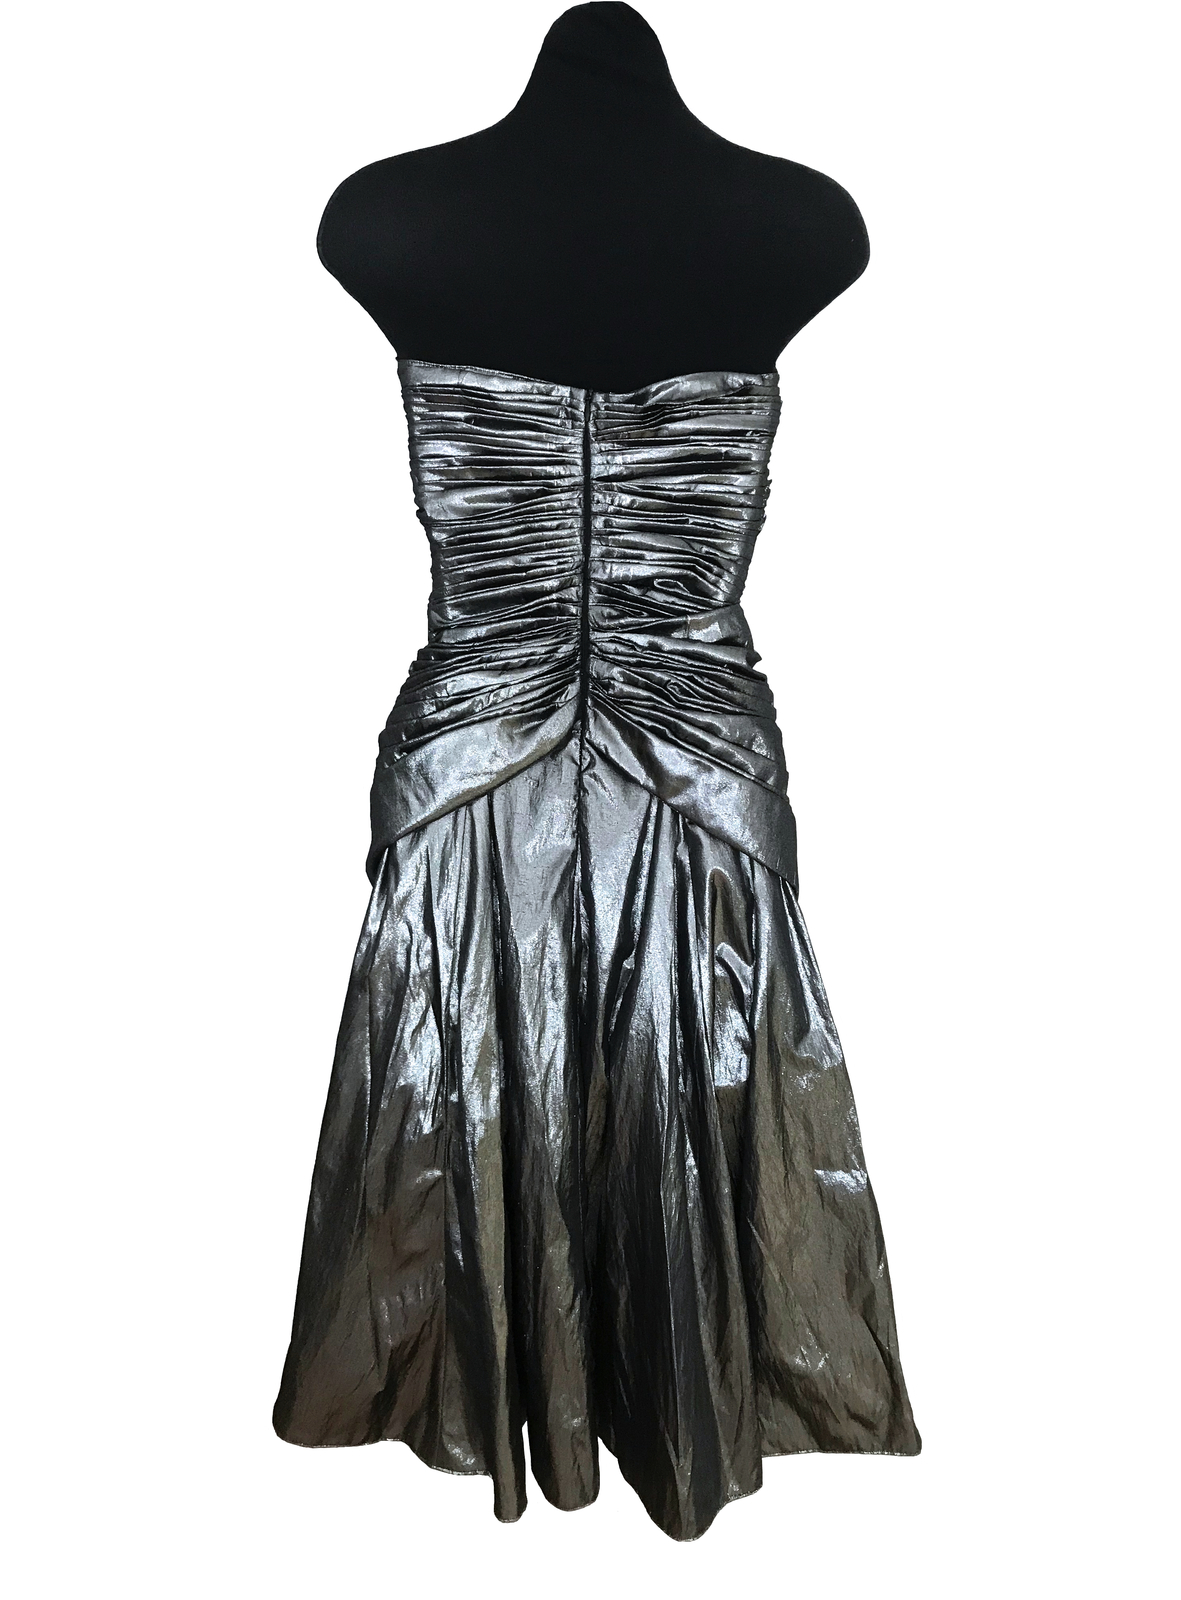 80s Etienne Brunel Paris Silver Metallic Lame Strapless Ruched Swing Party Dress image 8